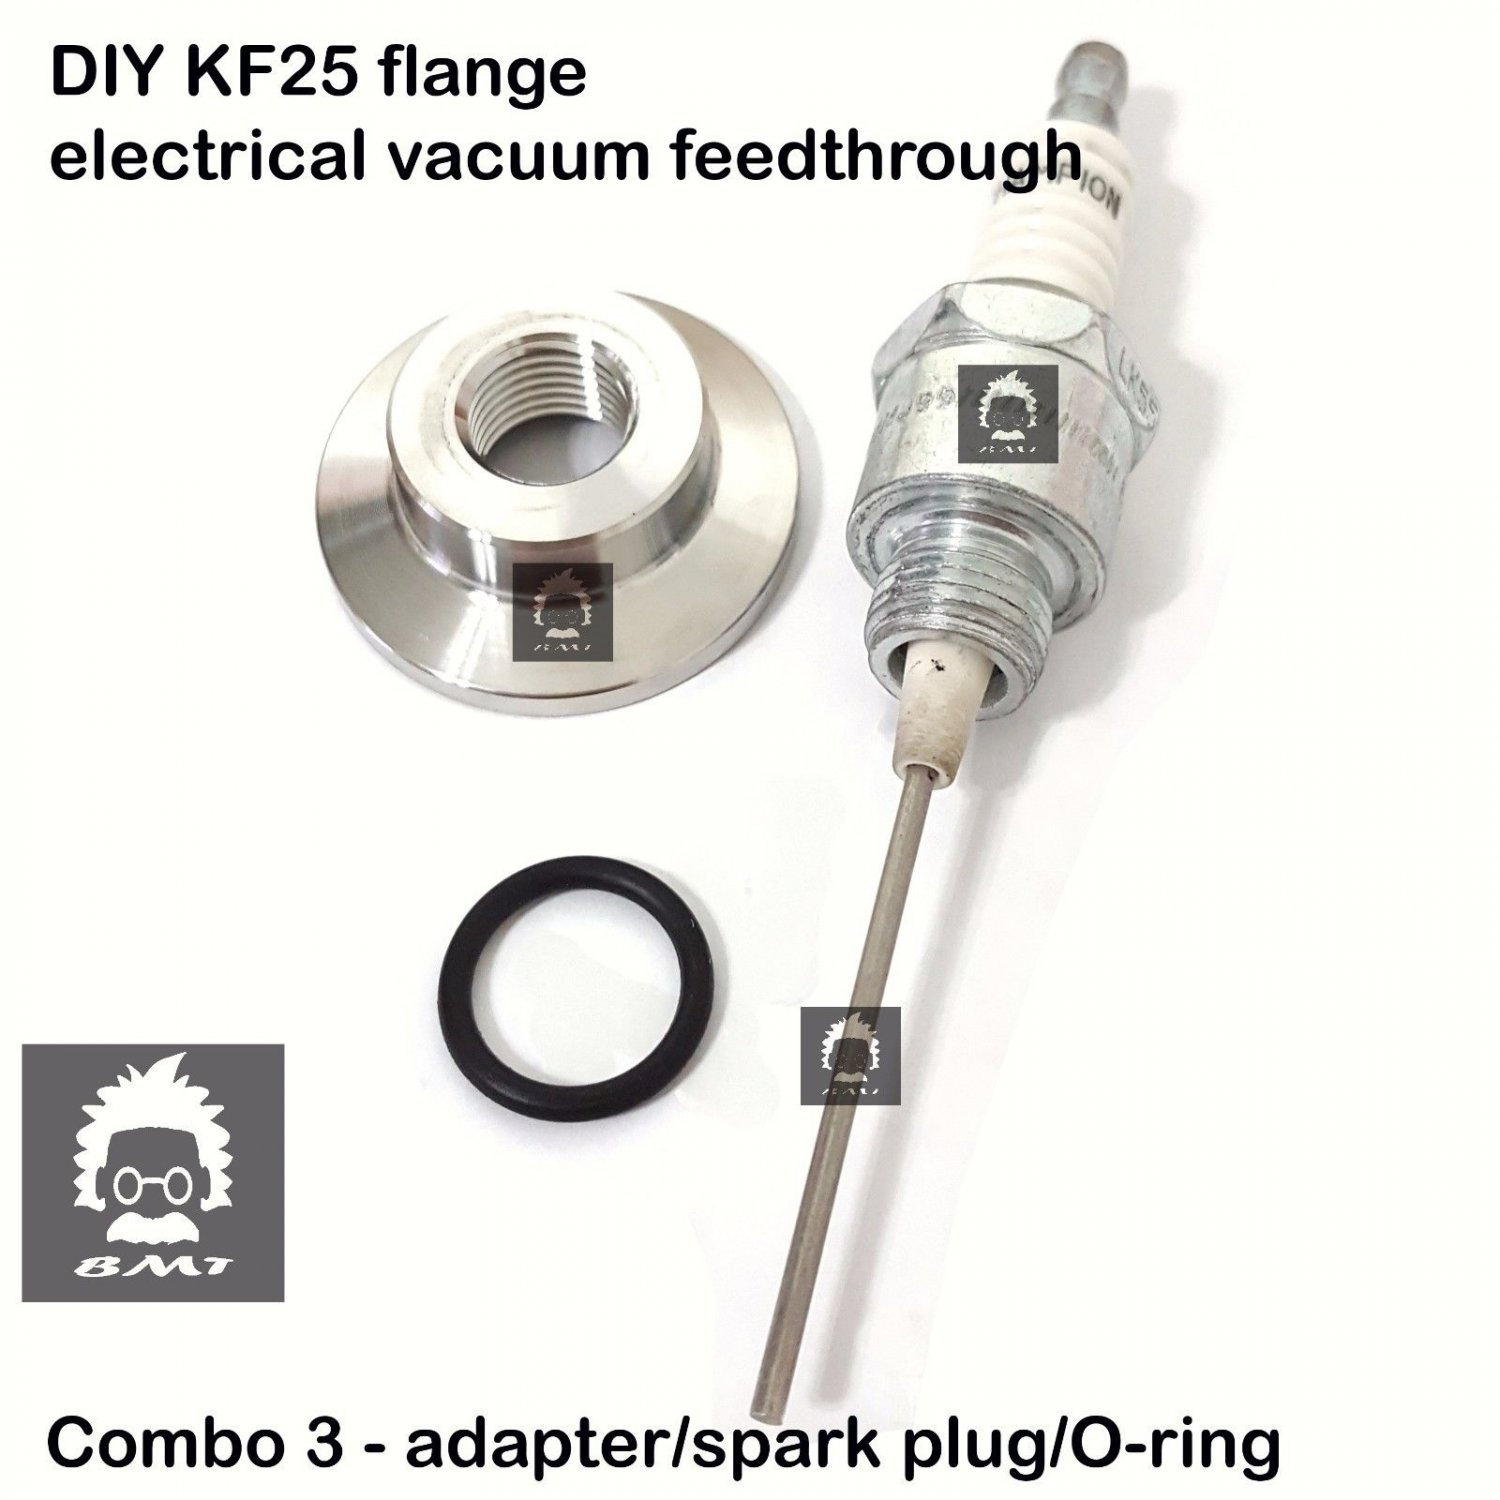 DIY KF25 electrical feed through, M14 x 1.25 adapter + industrial spark plug 2